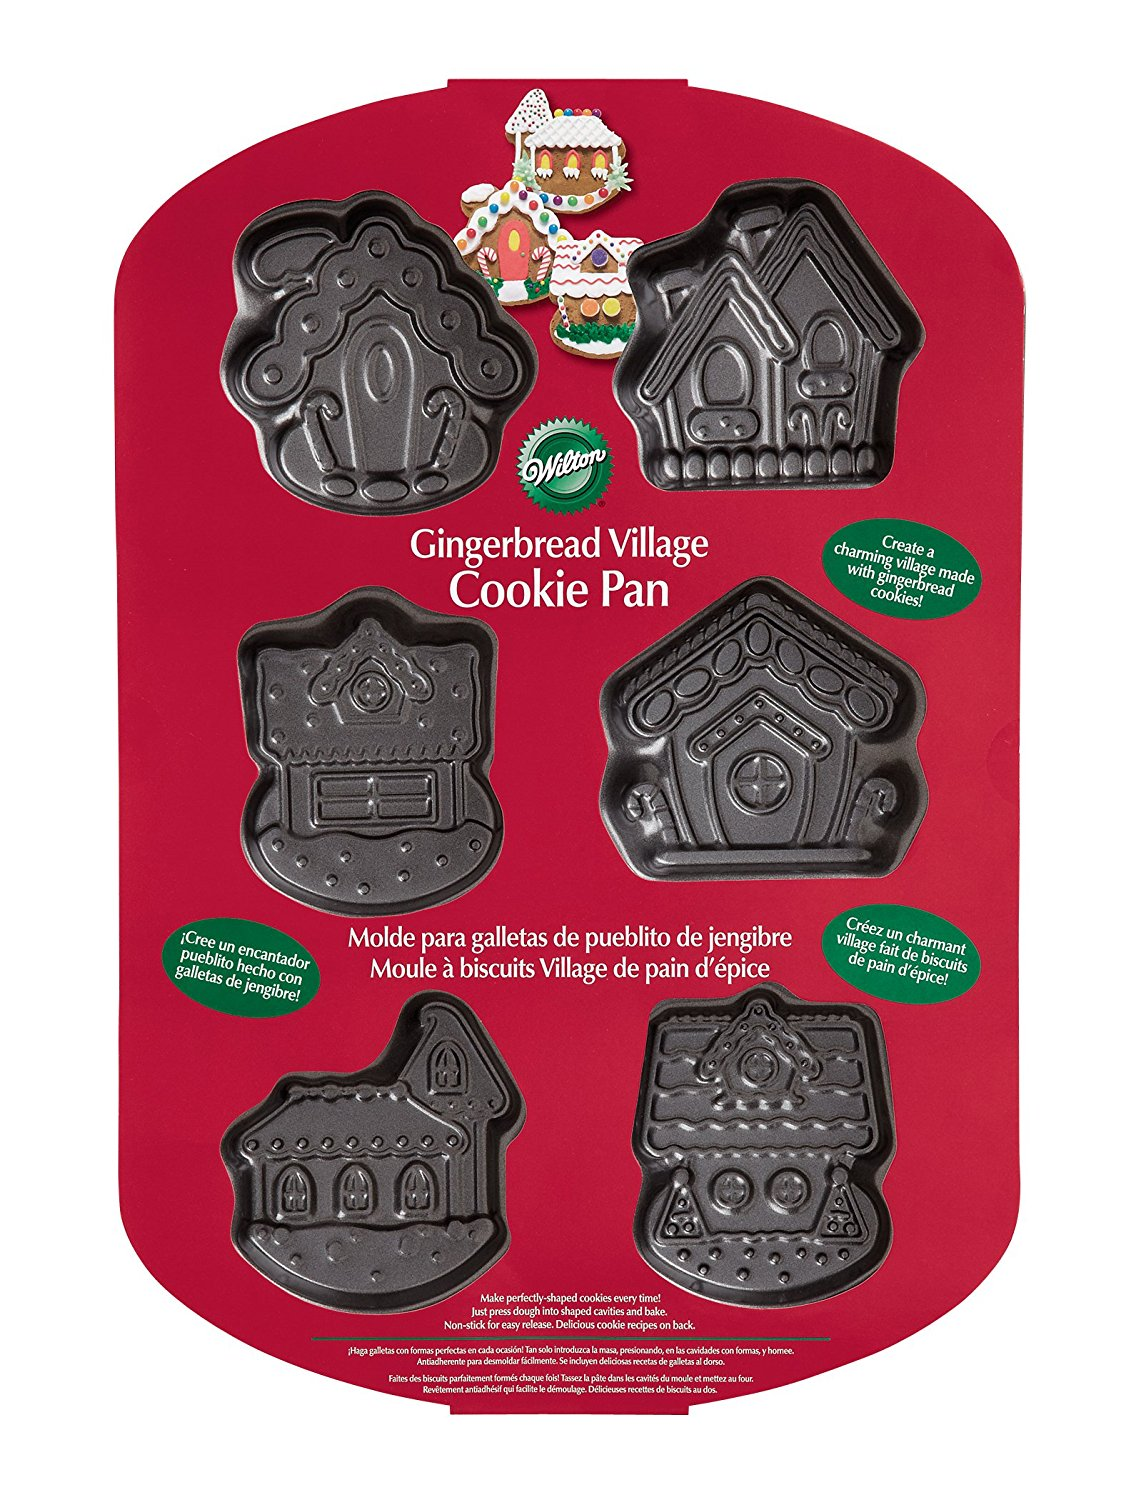 6 Cavity Gingerbread Village Cookie Pan, 6 Cavity By Wilton by